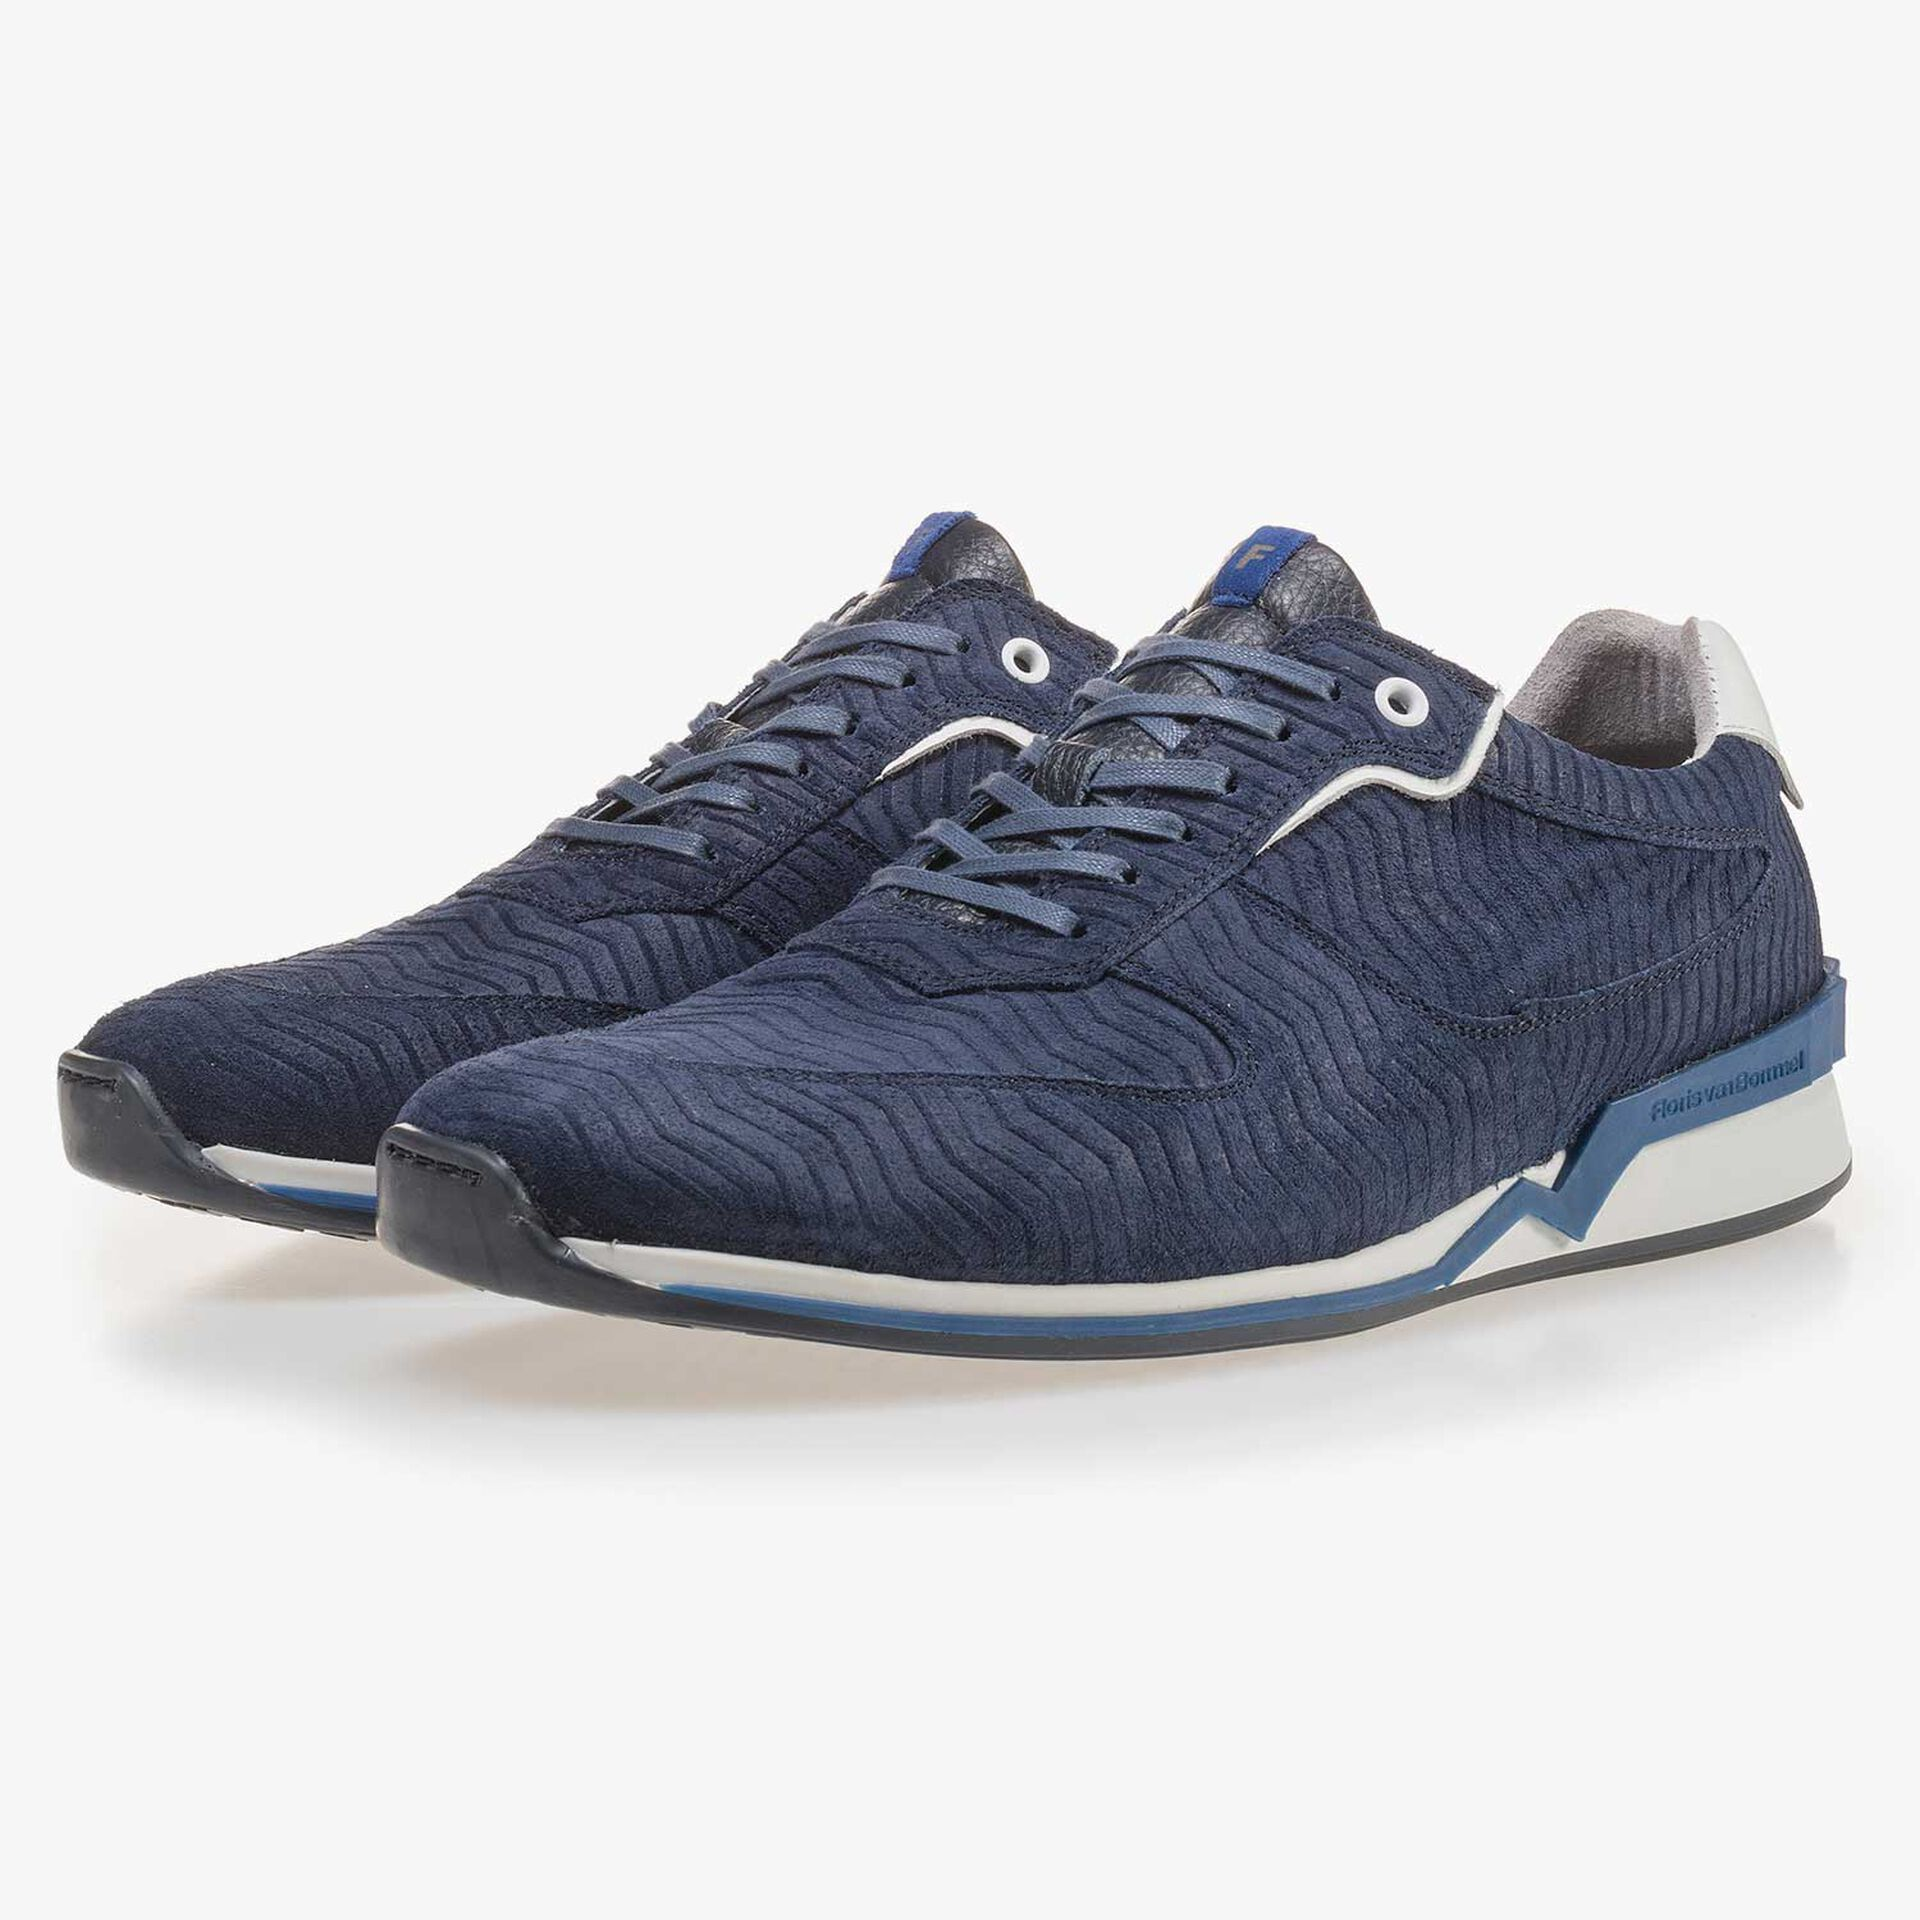 Dark blue suede leather sneaker with a zig-zag print